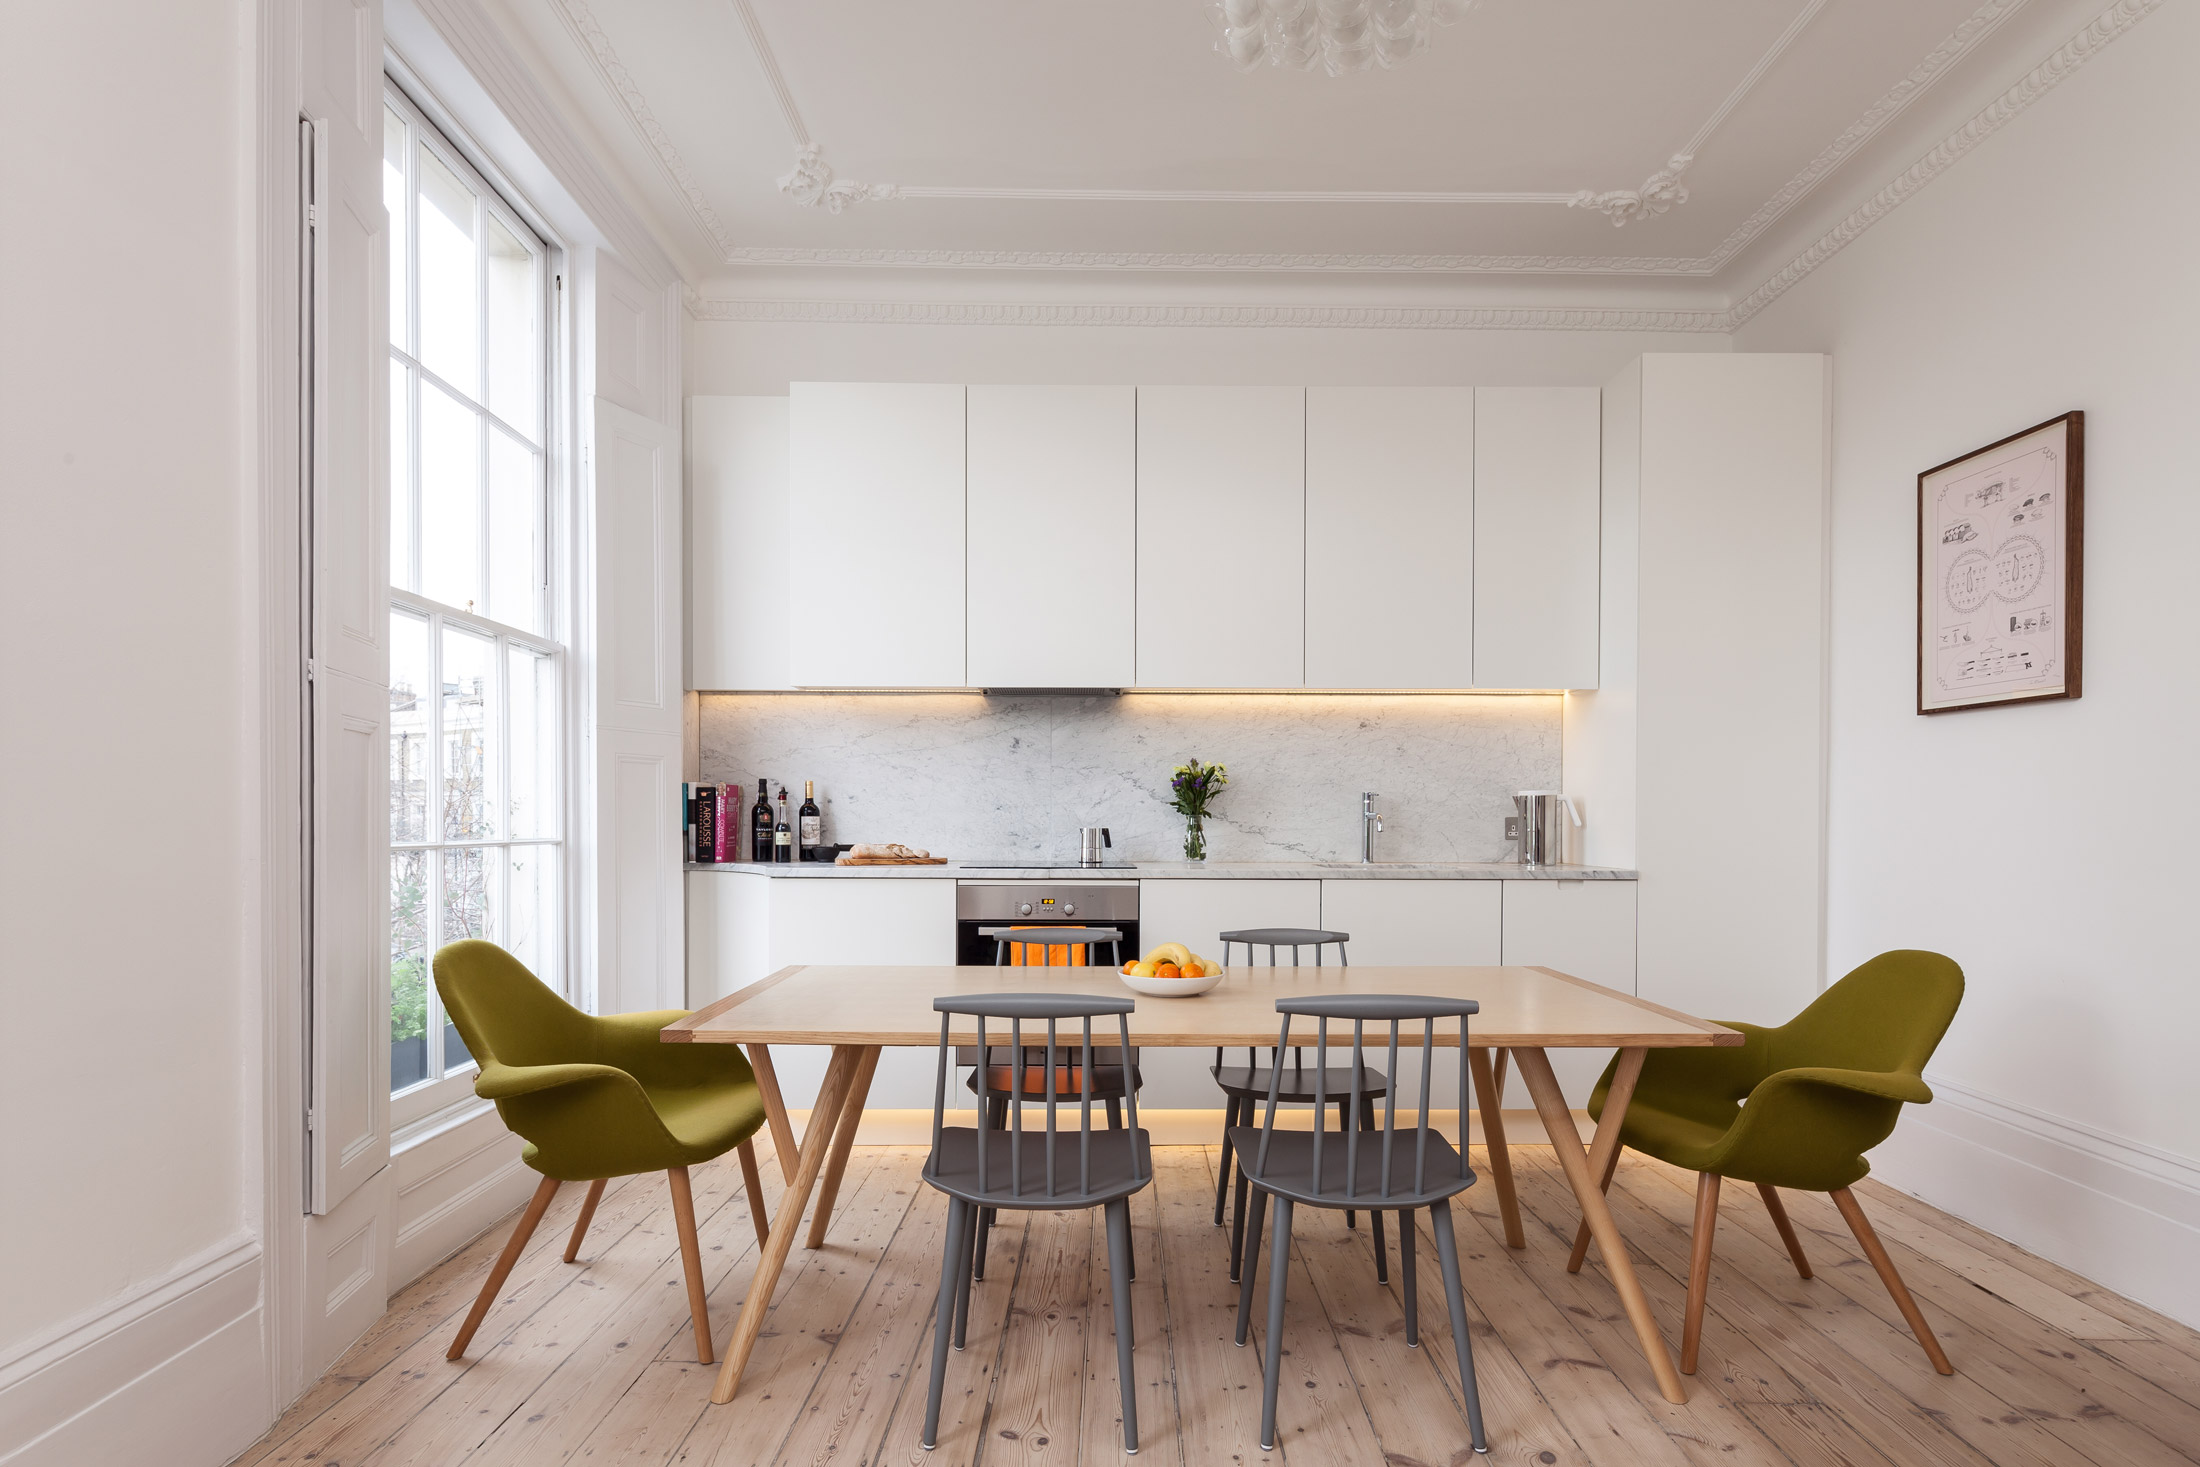 Architecture for London — Architects Residential & Commercial Projects